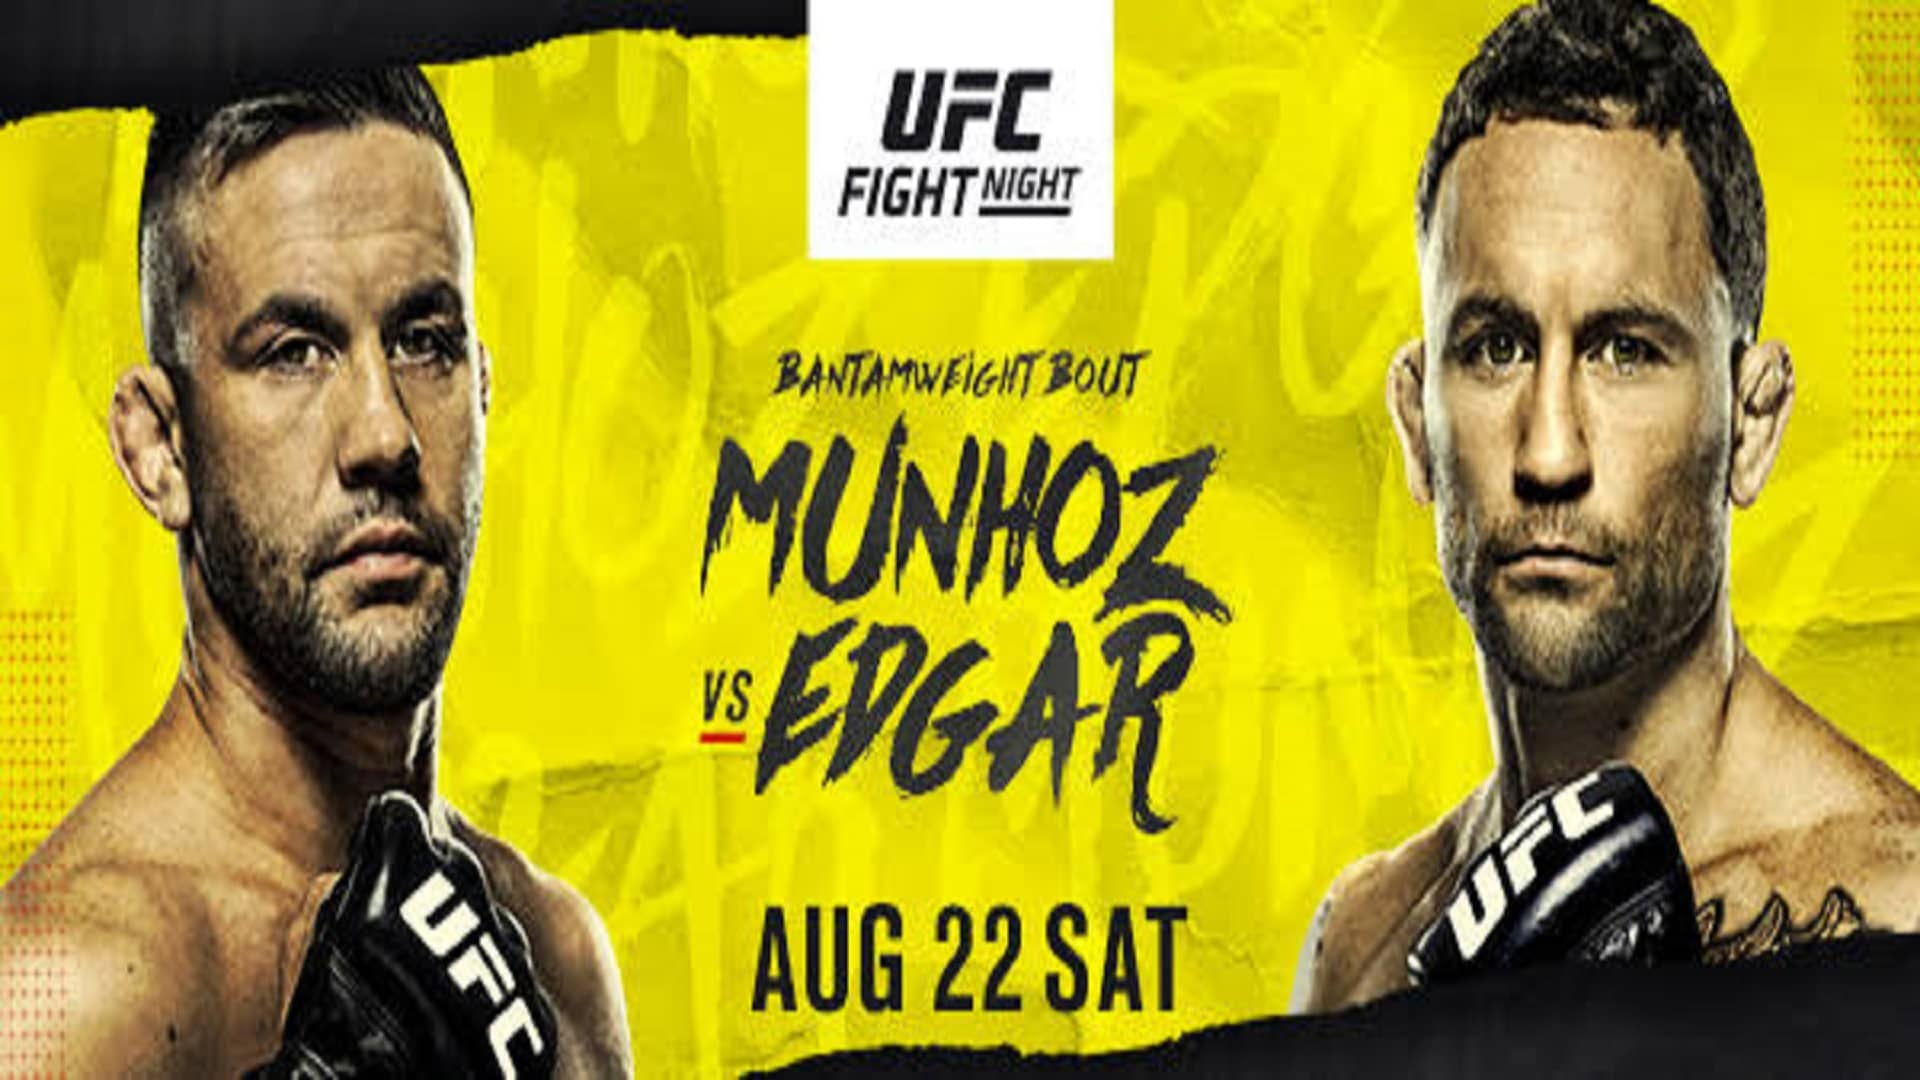 UFC-Fight-Night-Edgar-Munhoz